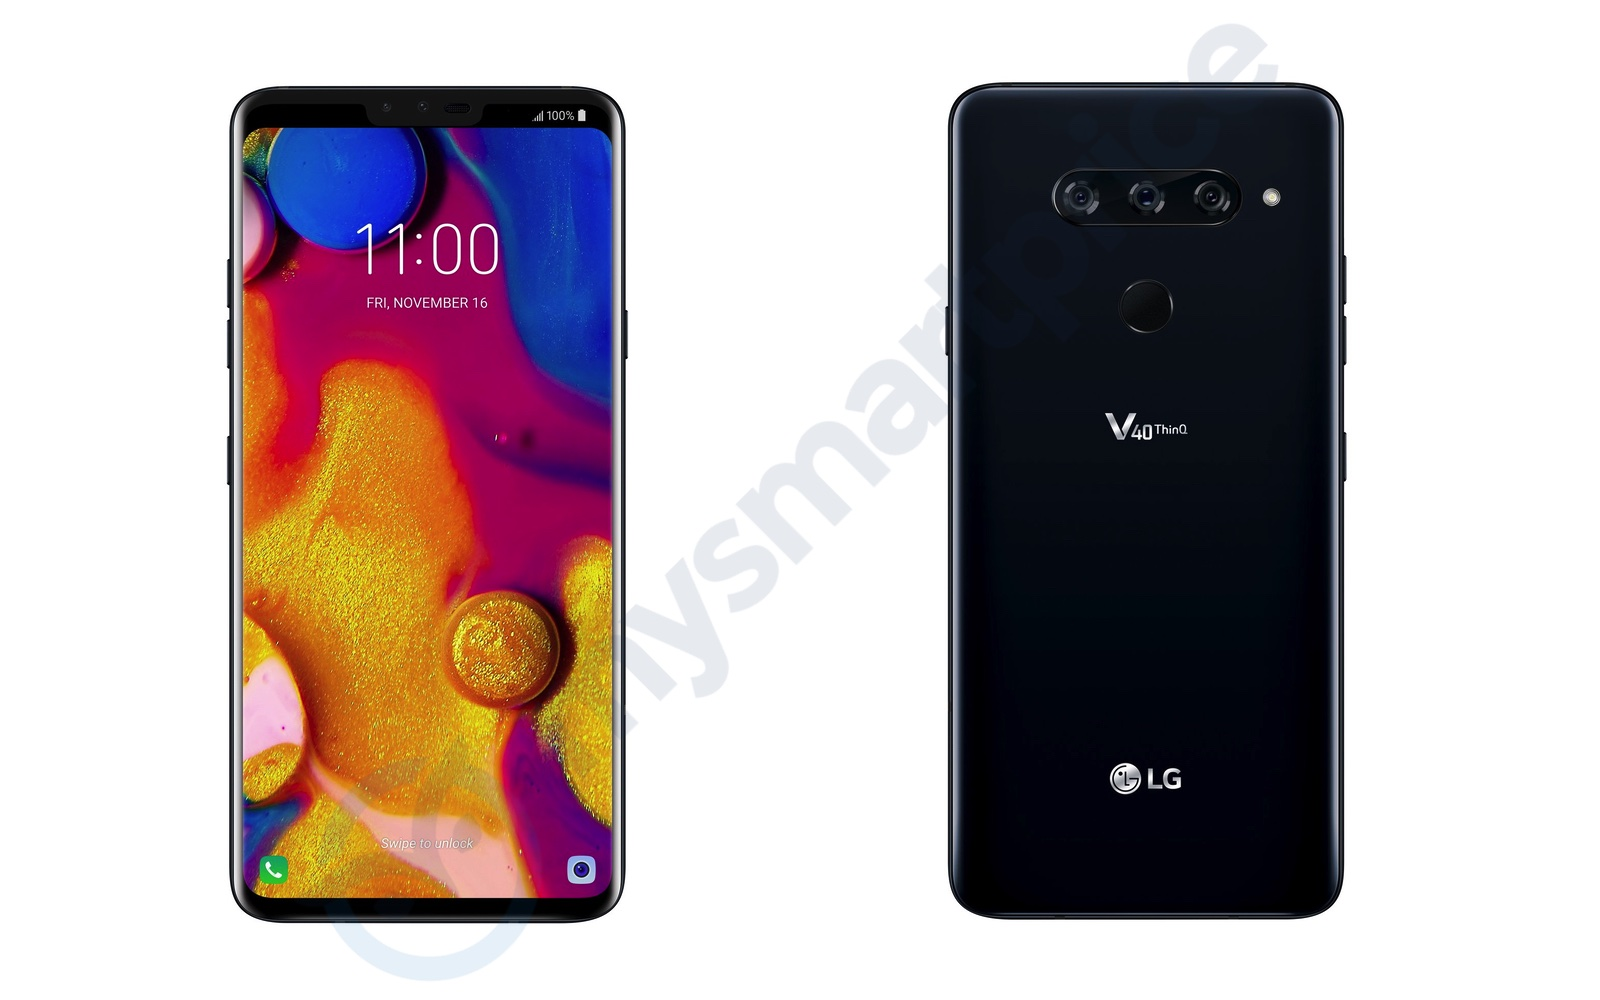 Official images show LG V40 ThinQ's triple camera and fingerprint resistant rear